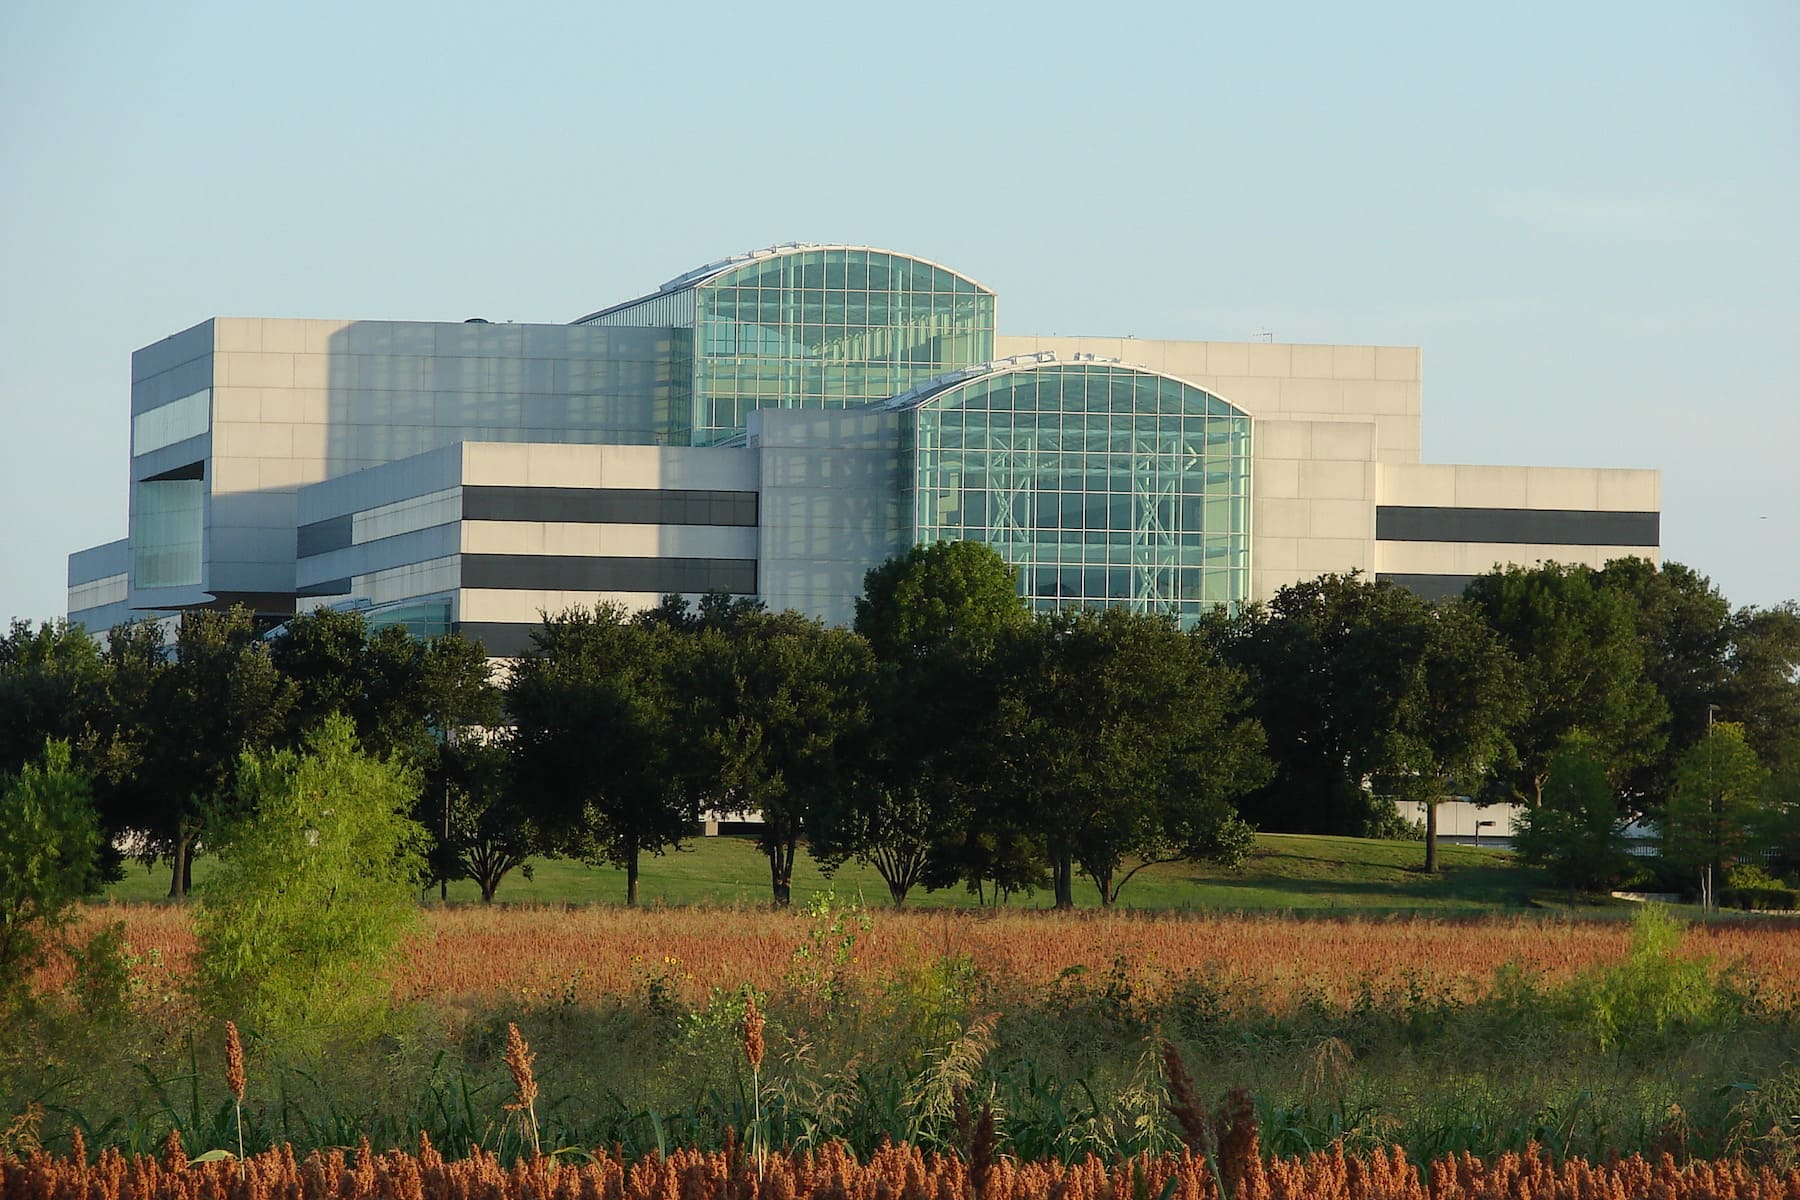 EDS HQ in Plano, TX